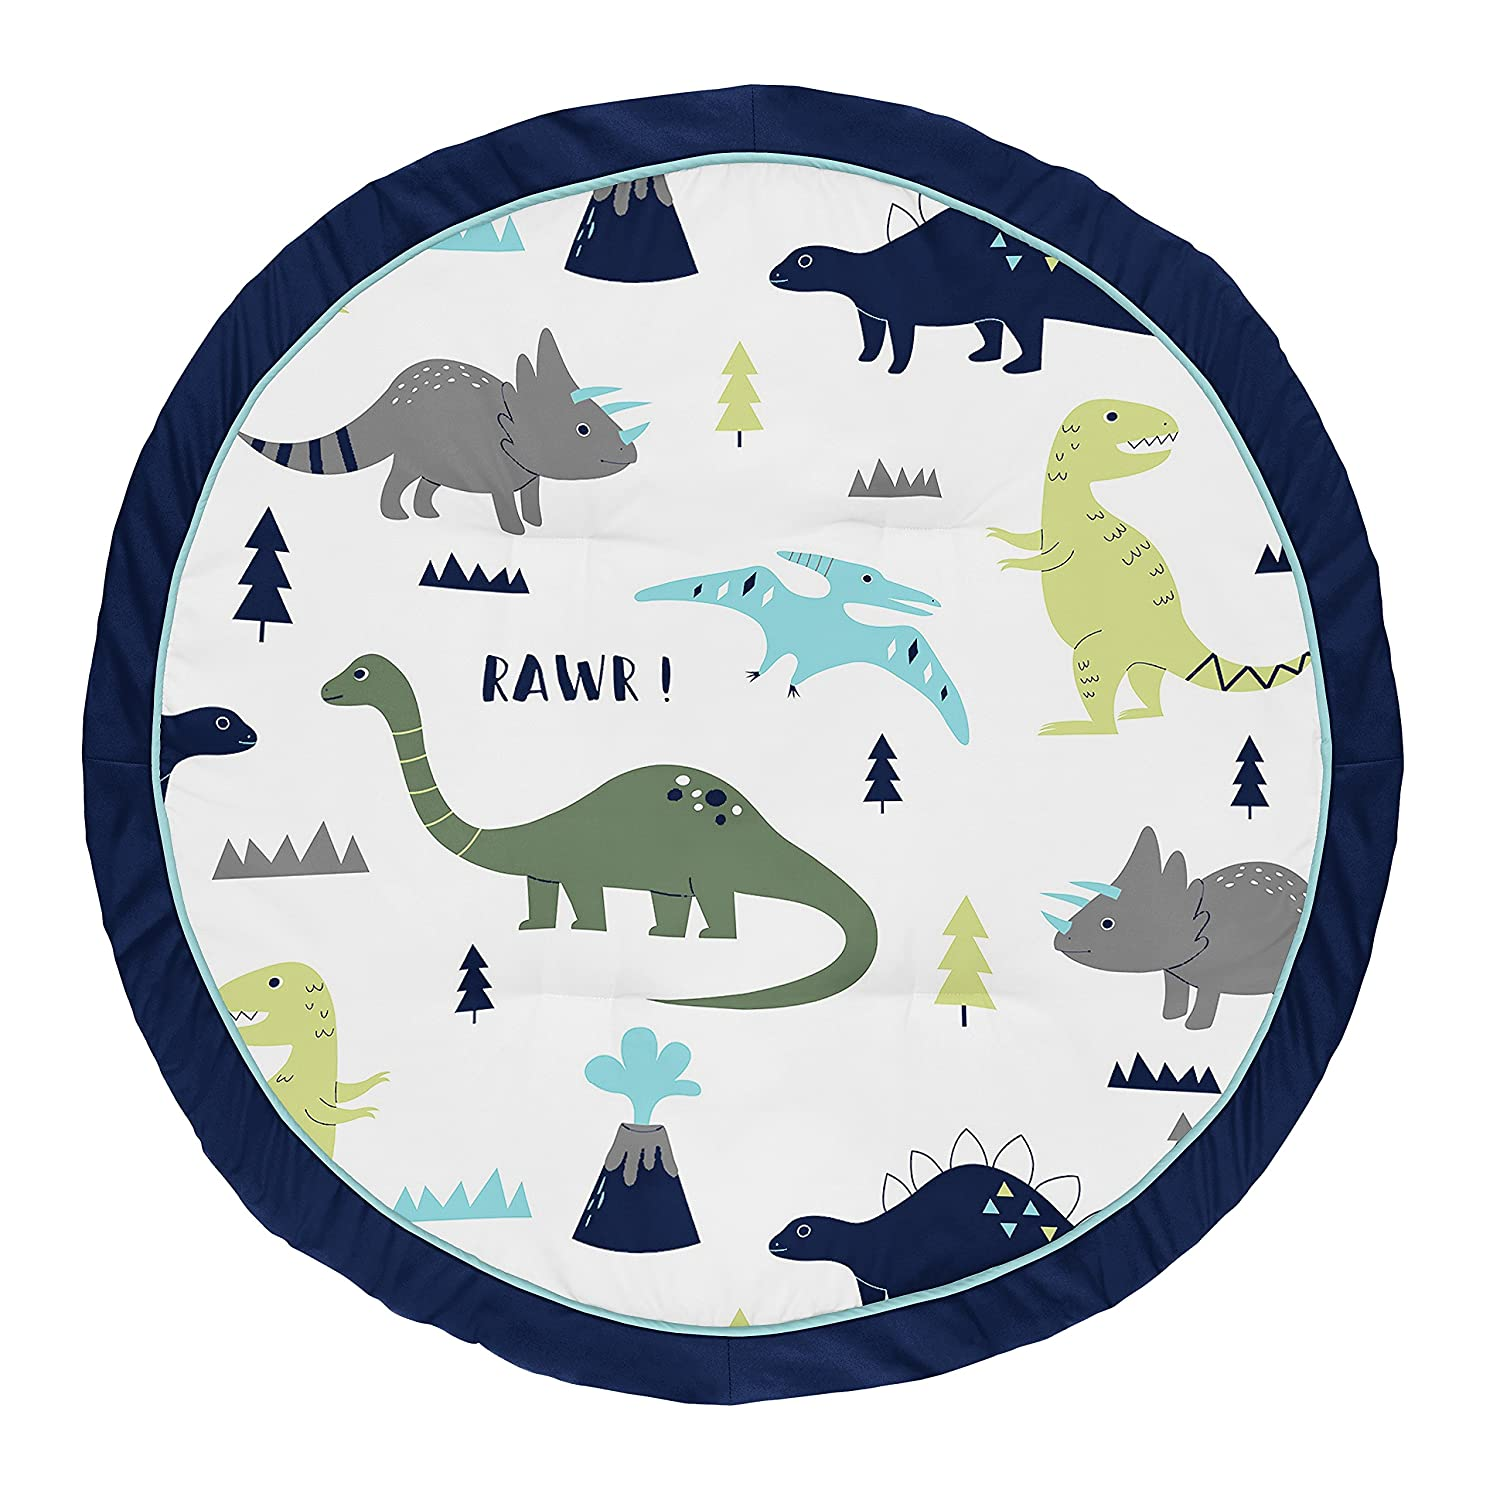 Sweet Jojo Designs Blue and Green Dino Playmat Tummy Time Baby and Infant Play Mat for Mod Dinosaur Collection